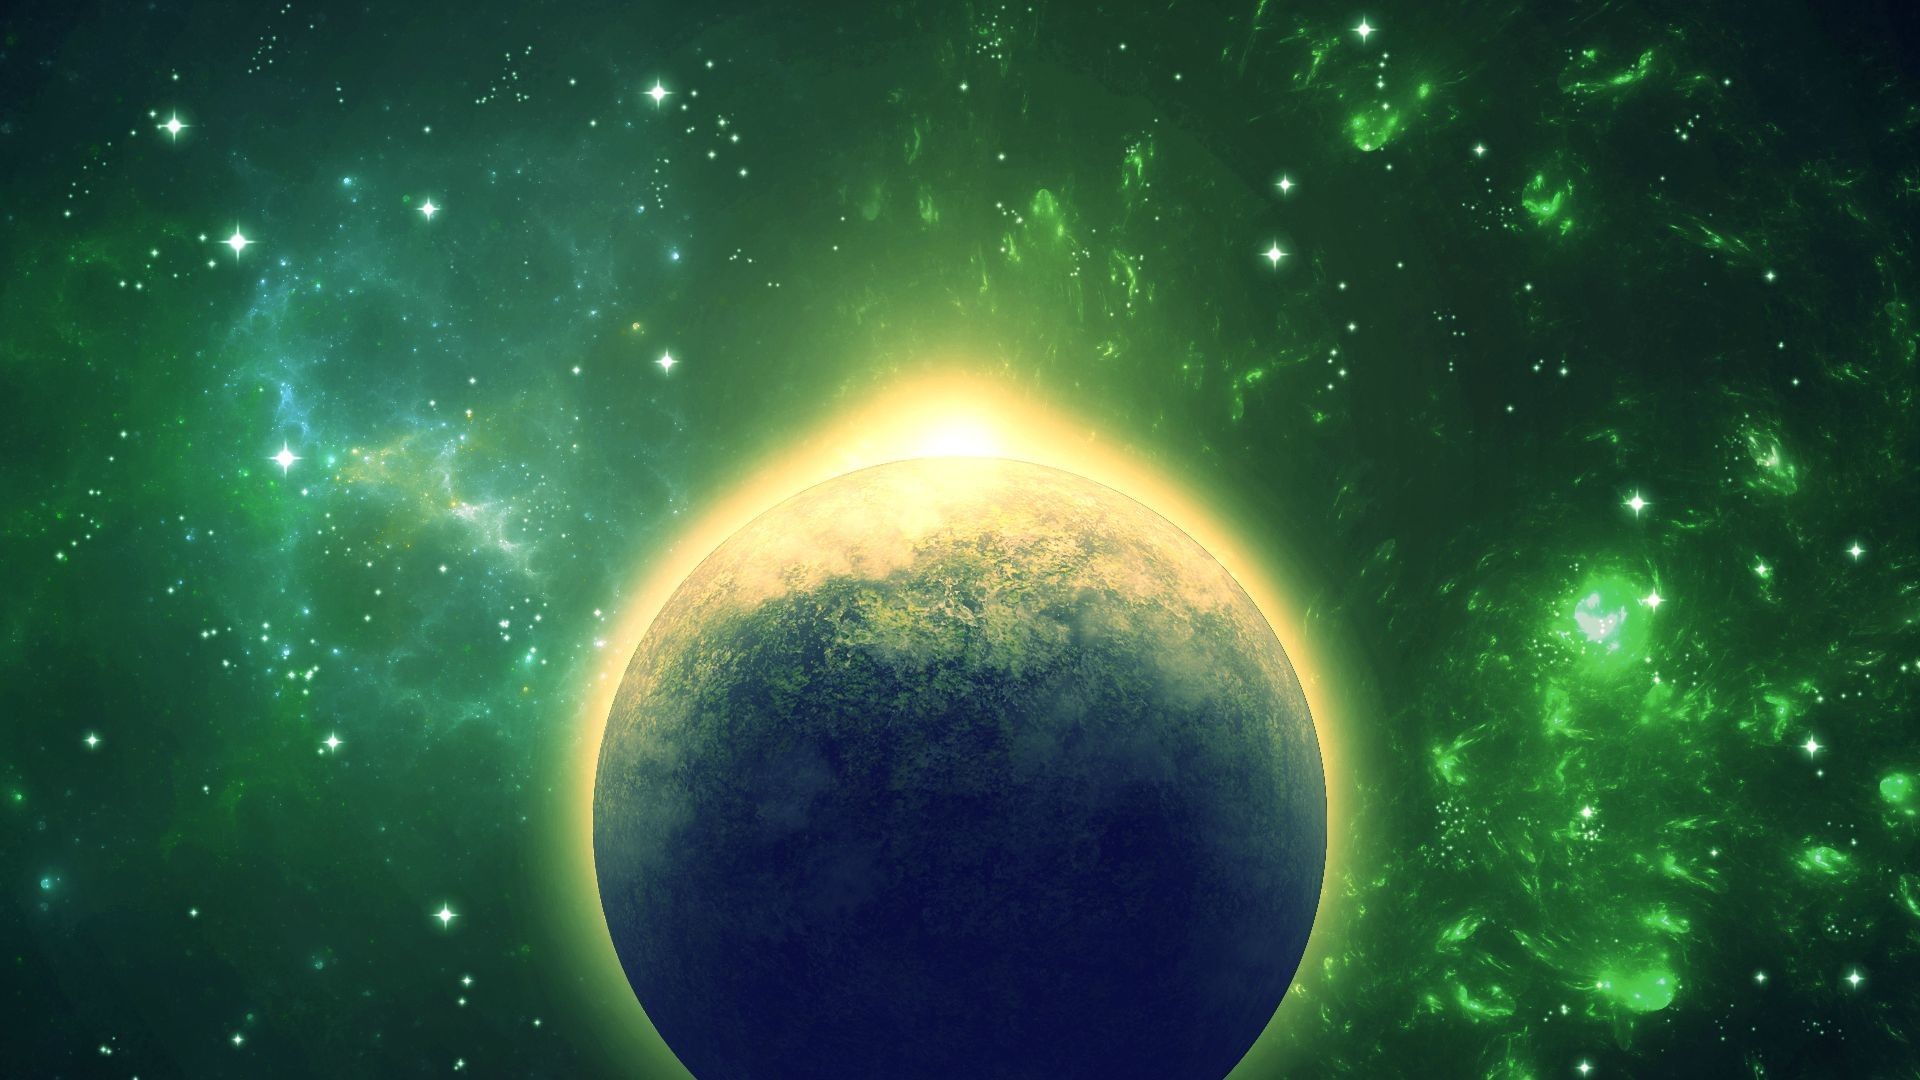 Colorful space wallpapers 73 images - Space wallpaper green ...